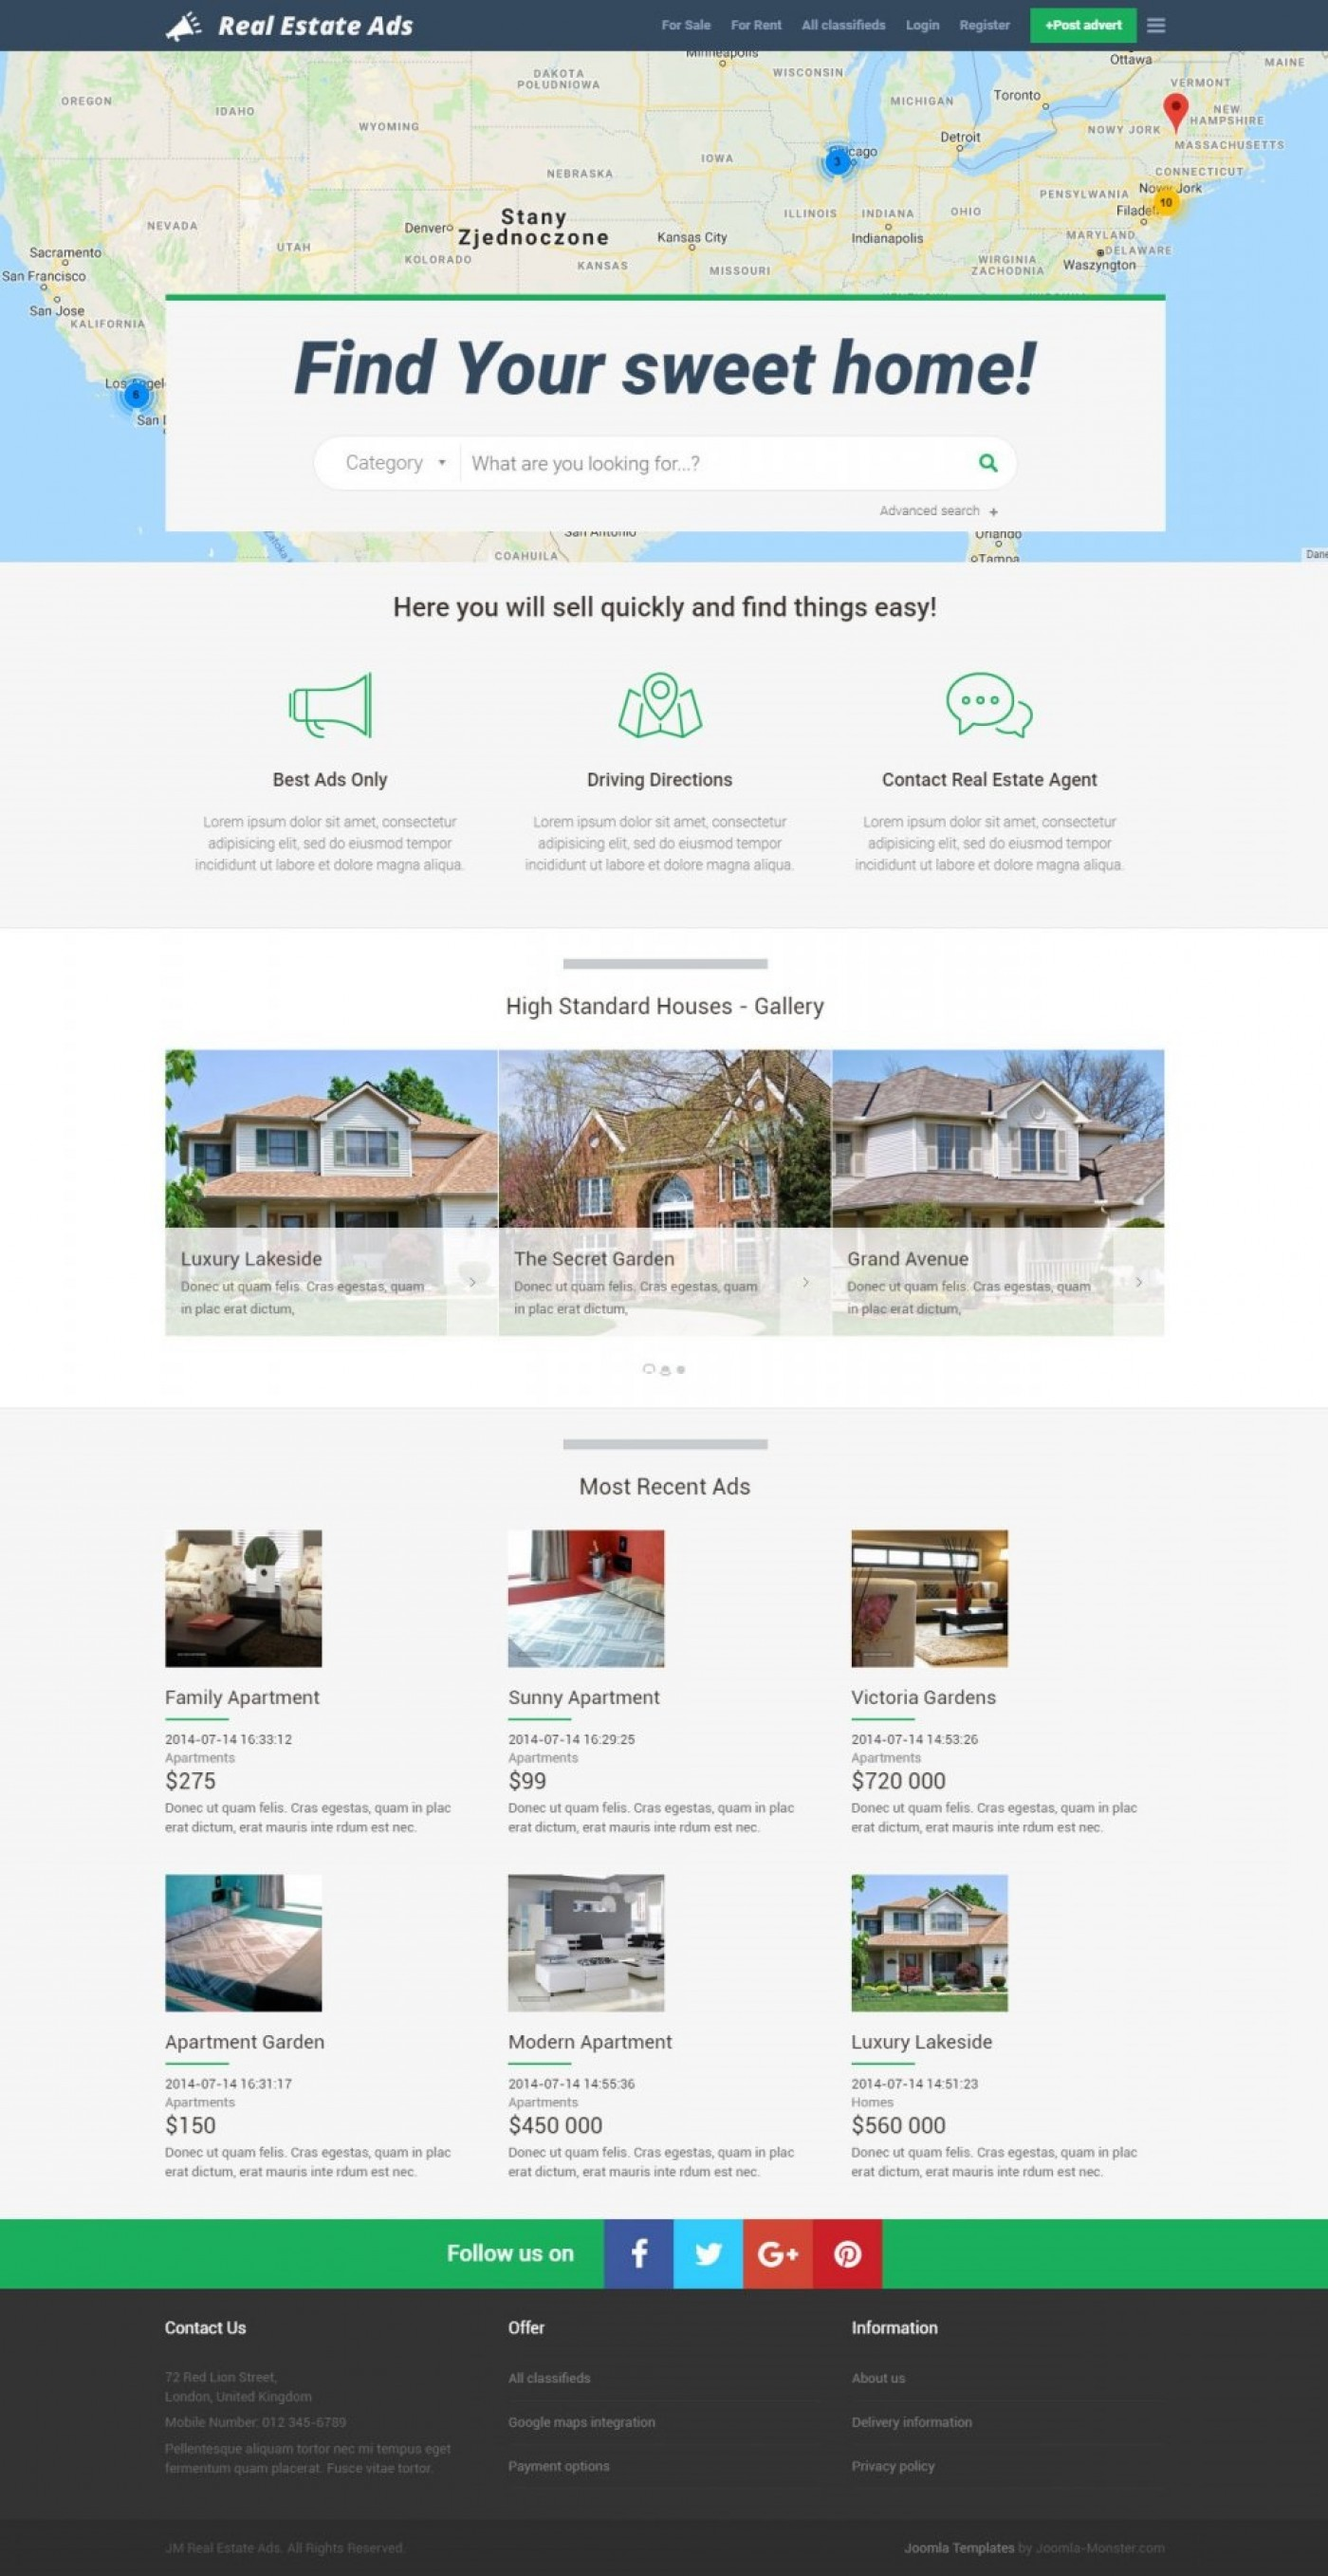 004 Imposing Real Estate Advertising Template High Def  Newspaper Ad Instagram Craigslist1400